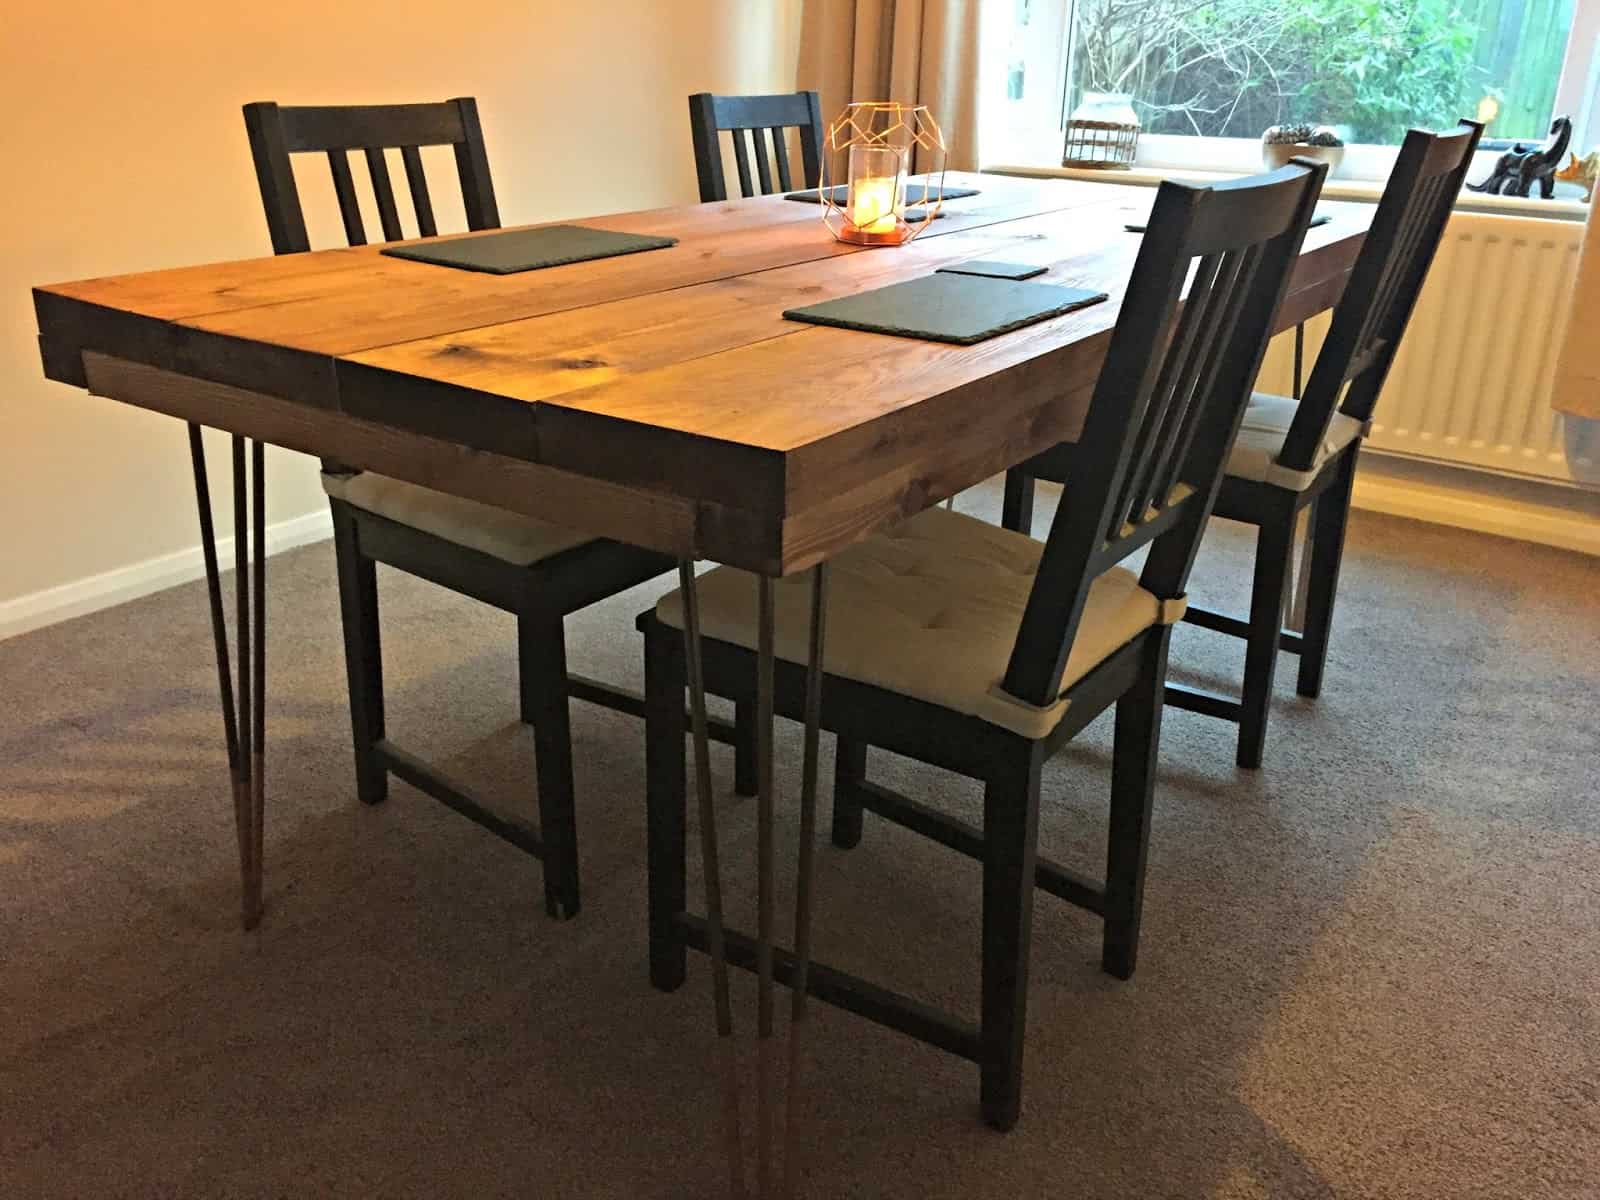 Eat In More Often Thanks To Our Diy Dining Table Ideas Top Reveal